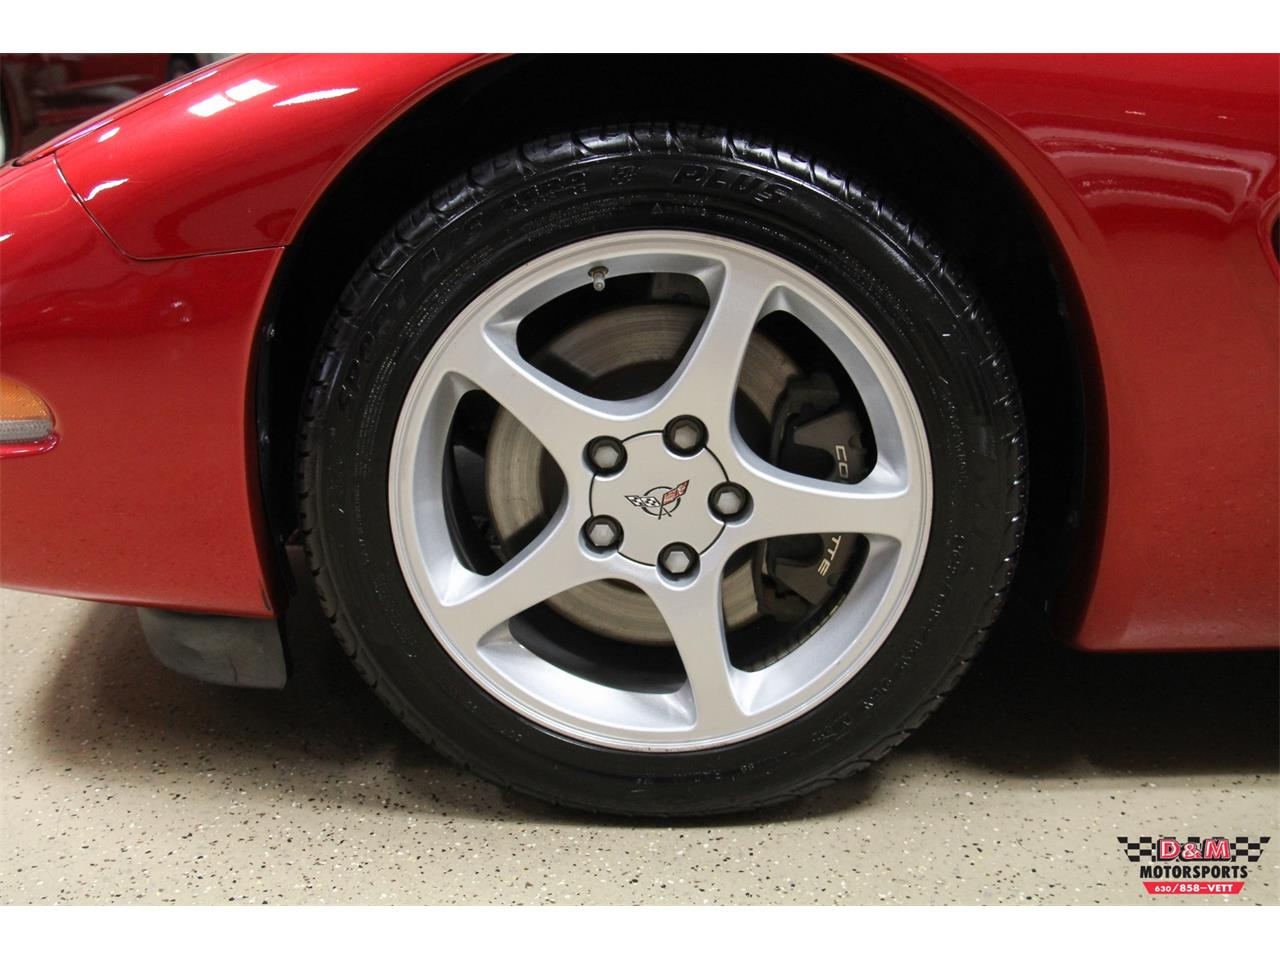 Large Picture of 2000 Chevrolet Corvette - $15,995.00 Offered by D & M Motorsports - LVA3